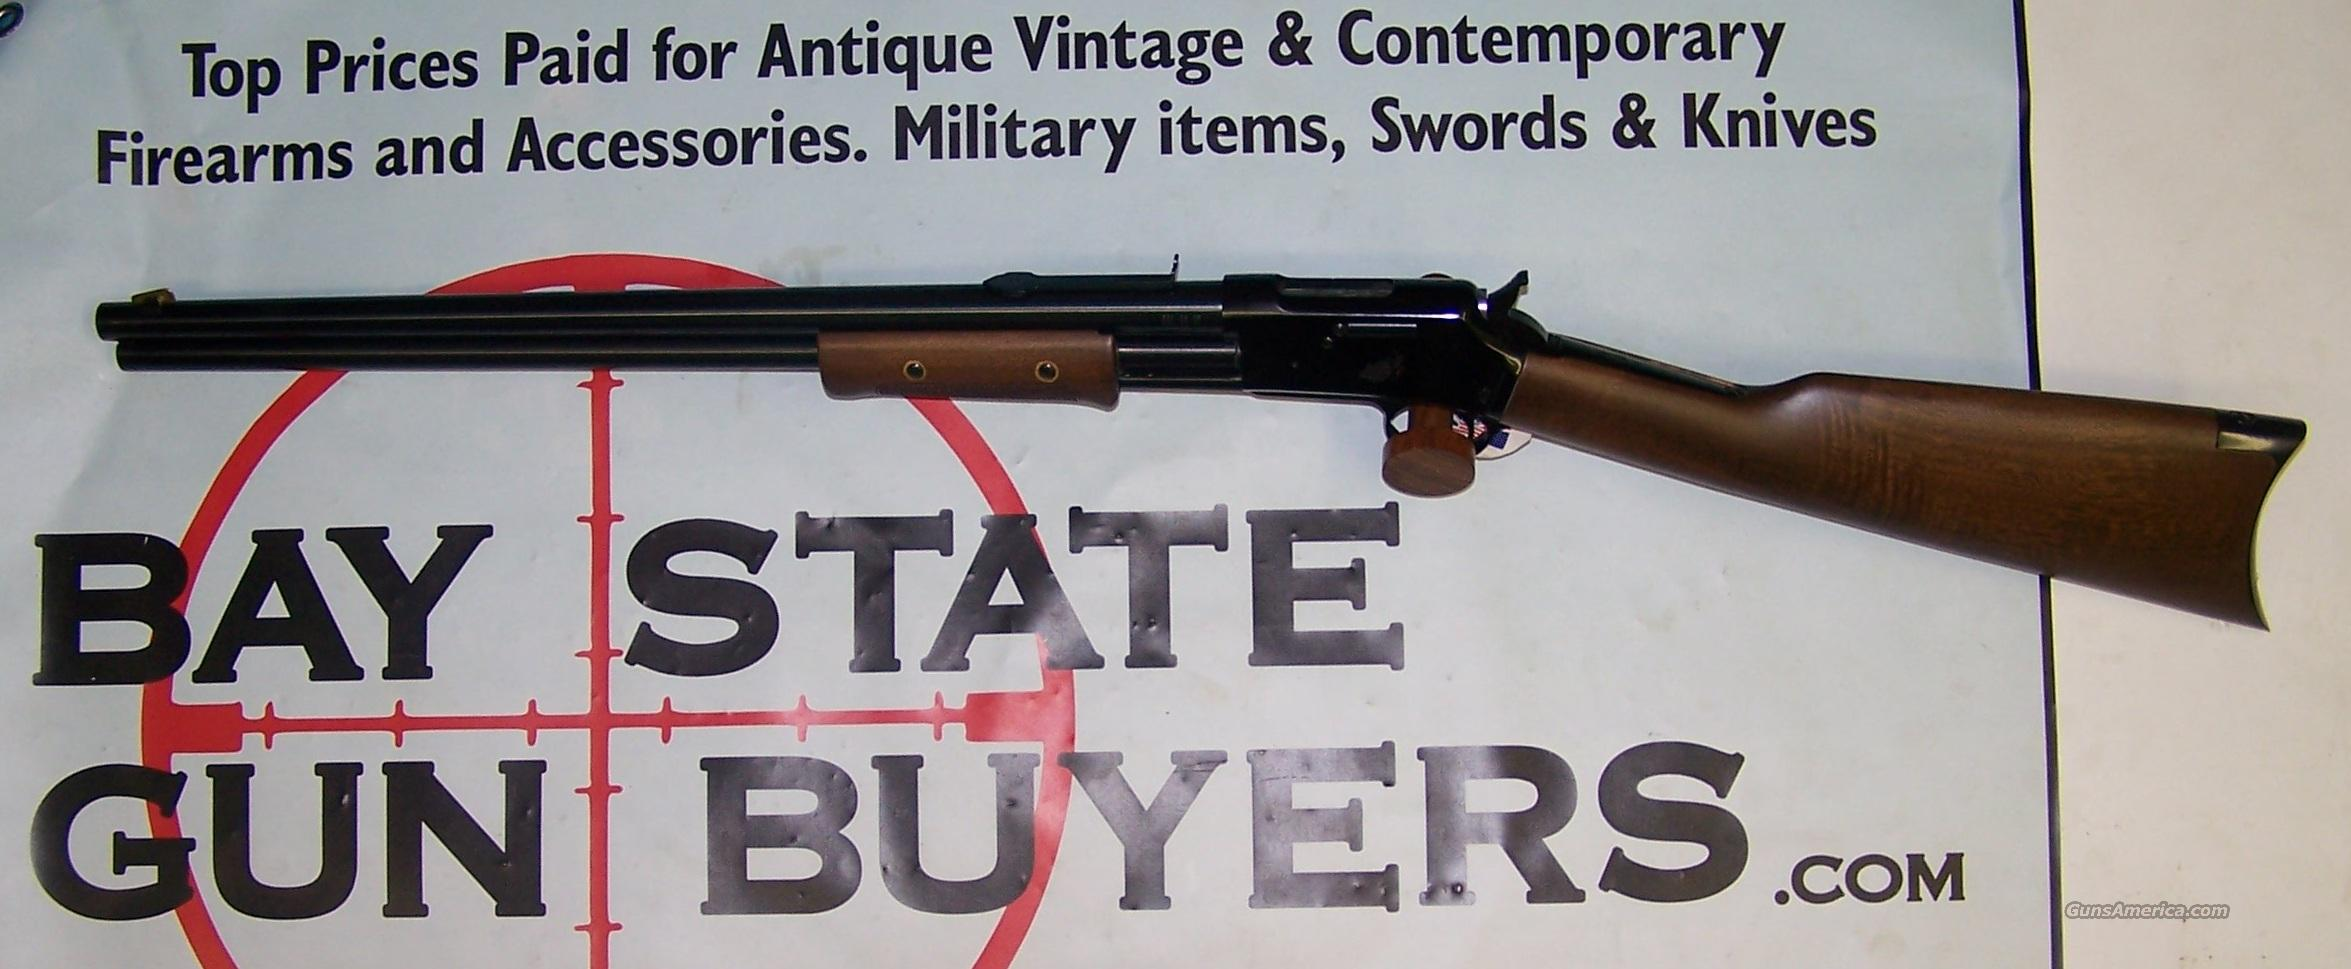 American Western Arms LIGHTNING Pump Action CARBINE Rifle 38 spl caliber LIKE NEW  Guns > Rifles > American Western Arms (AWA) Rifles